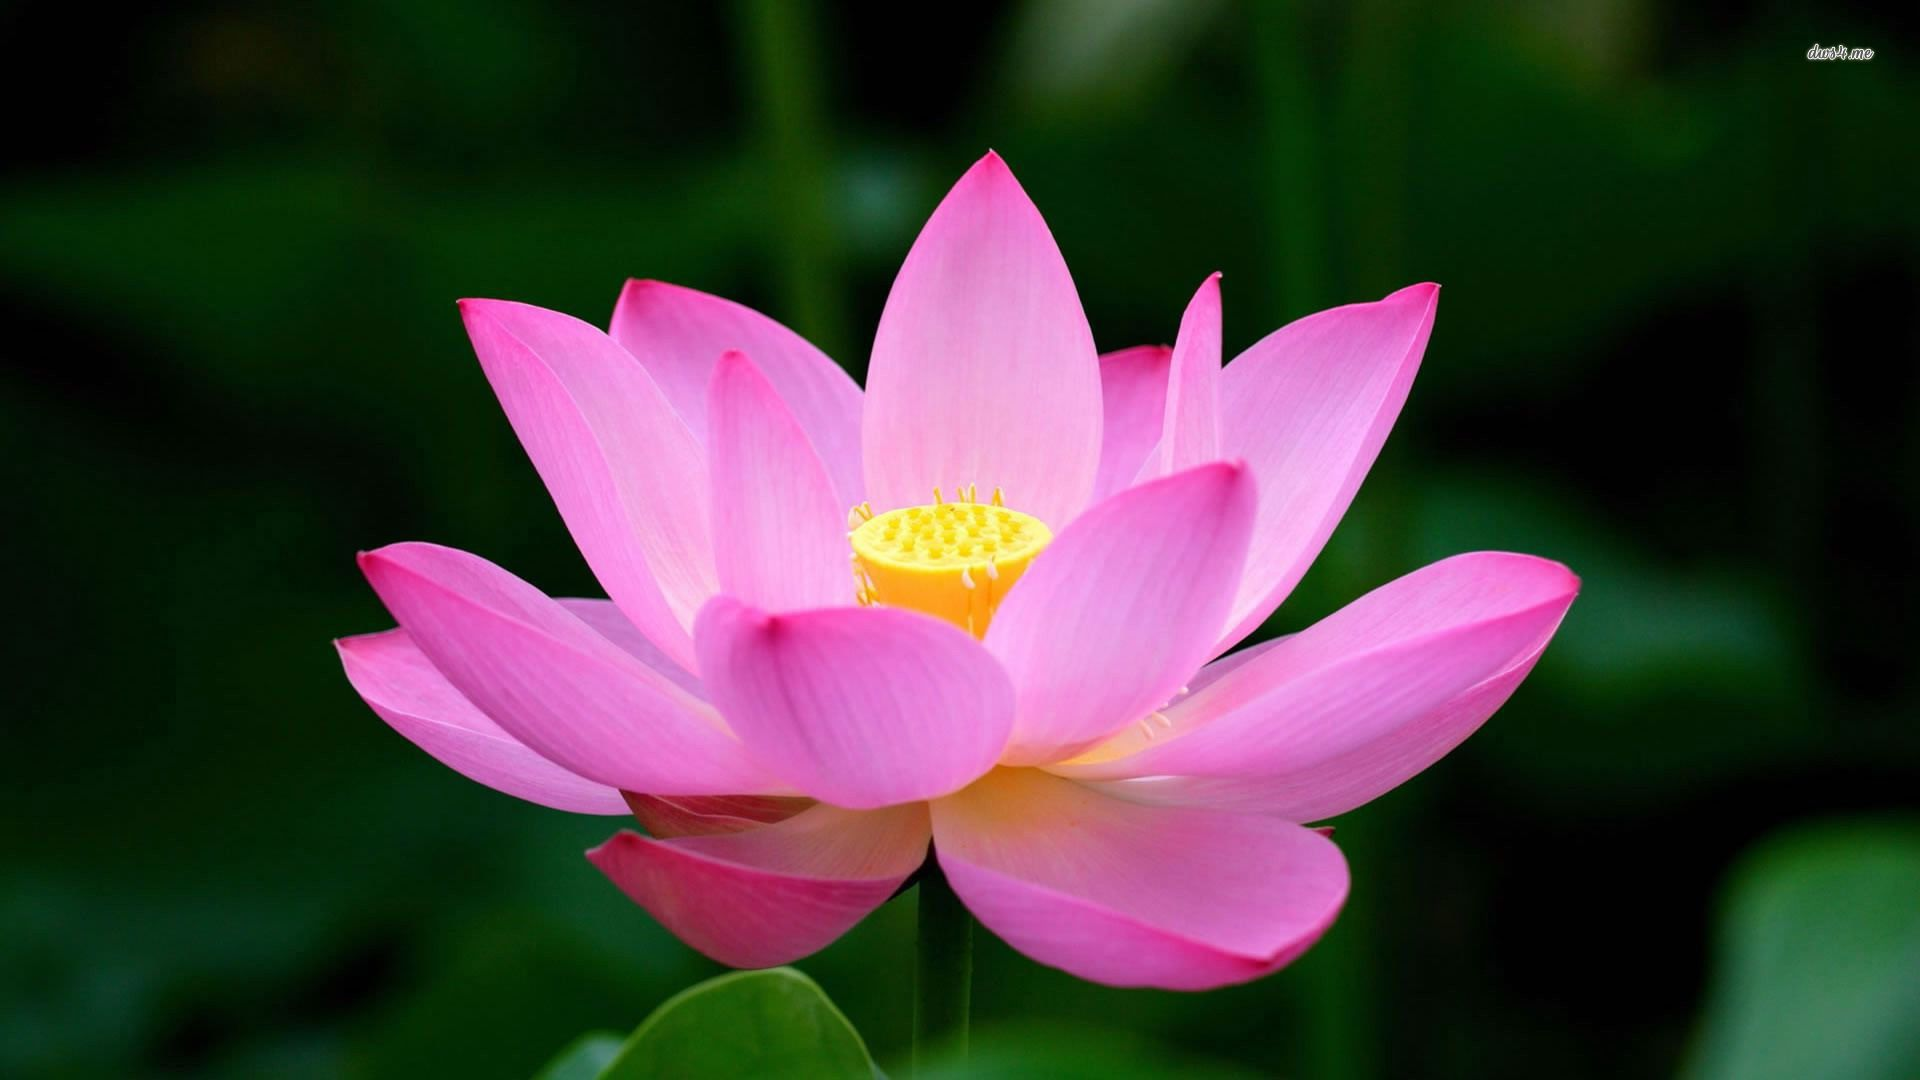 Purple lotus flower wallpapers phone natures wallpapers pinterest lotus flower wallpaper - Fleur de lotus symbole ...